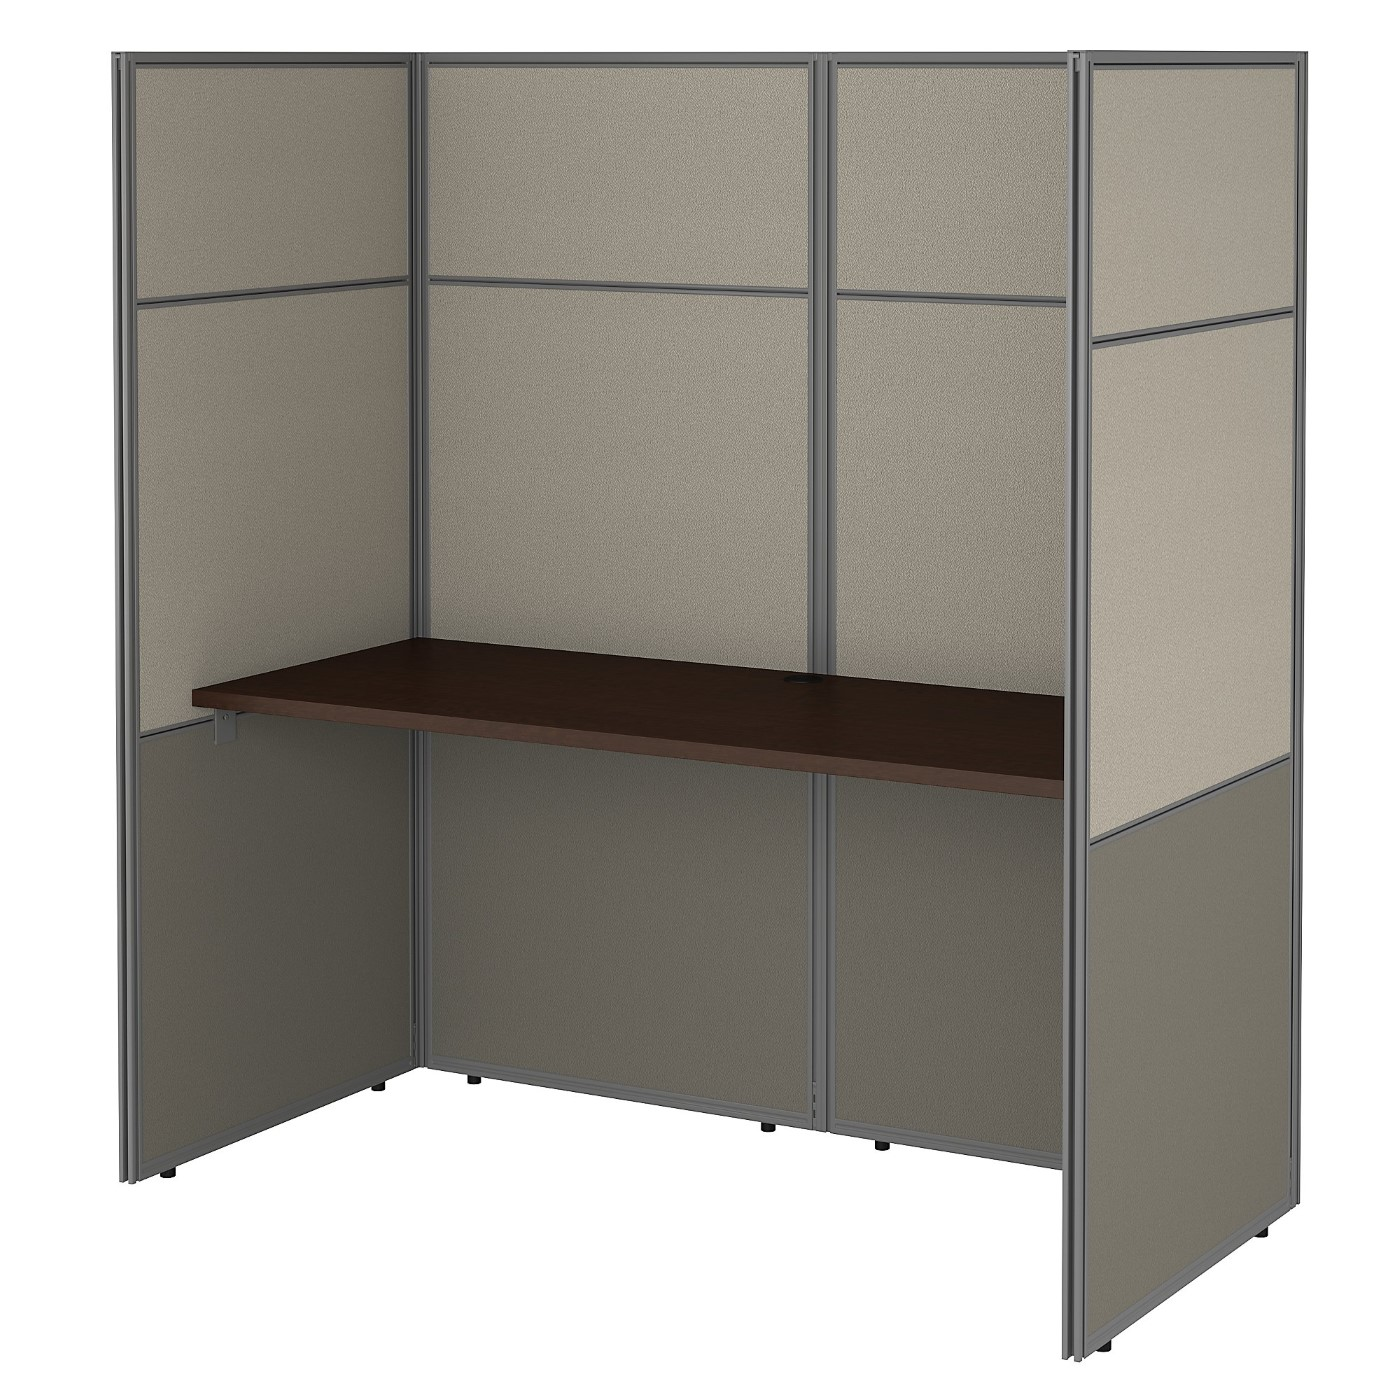 <font color=#c60><b>BUSH BUSINESS FURNITURE EASY OFFICE 60W CUBICLE DESK WORKSTATION WITH 66H CLOSED PANELS. FREE SHIPPING 30H x 72L x 72W</font></b>